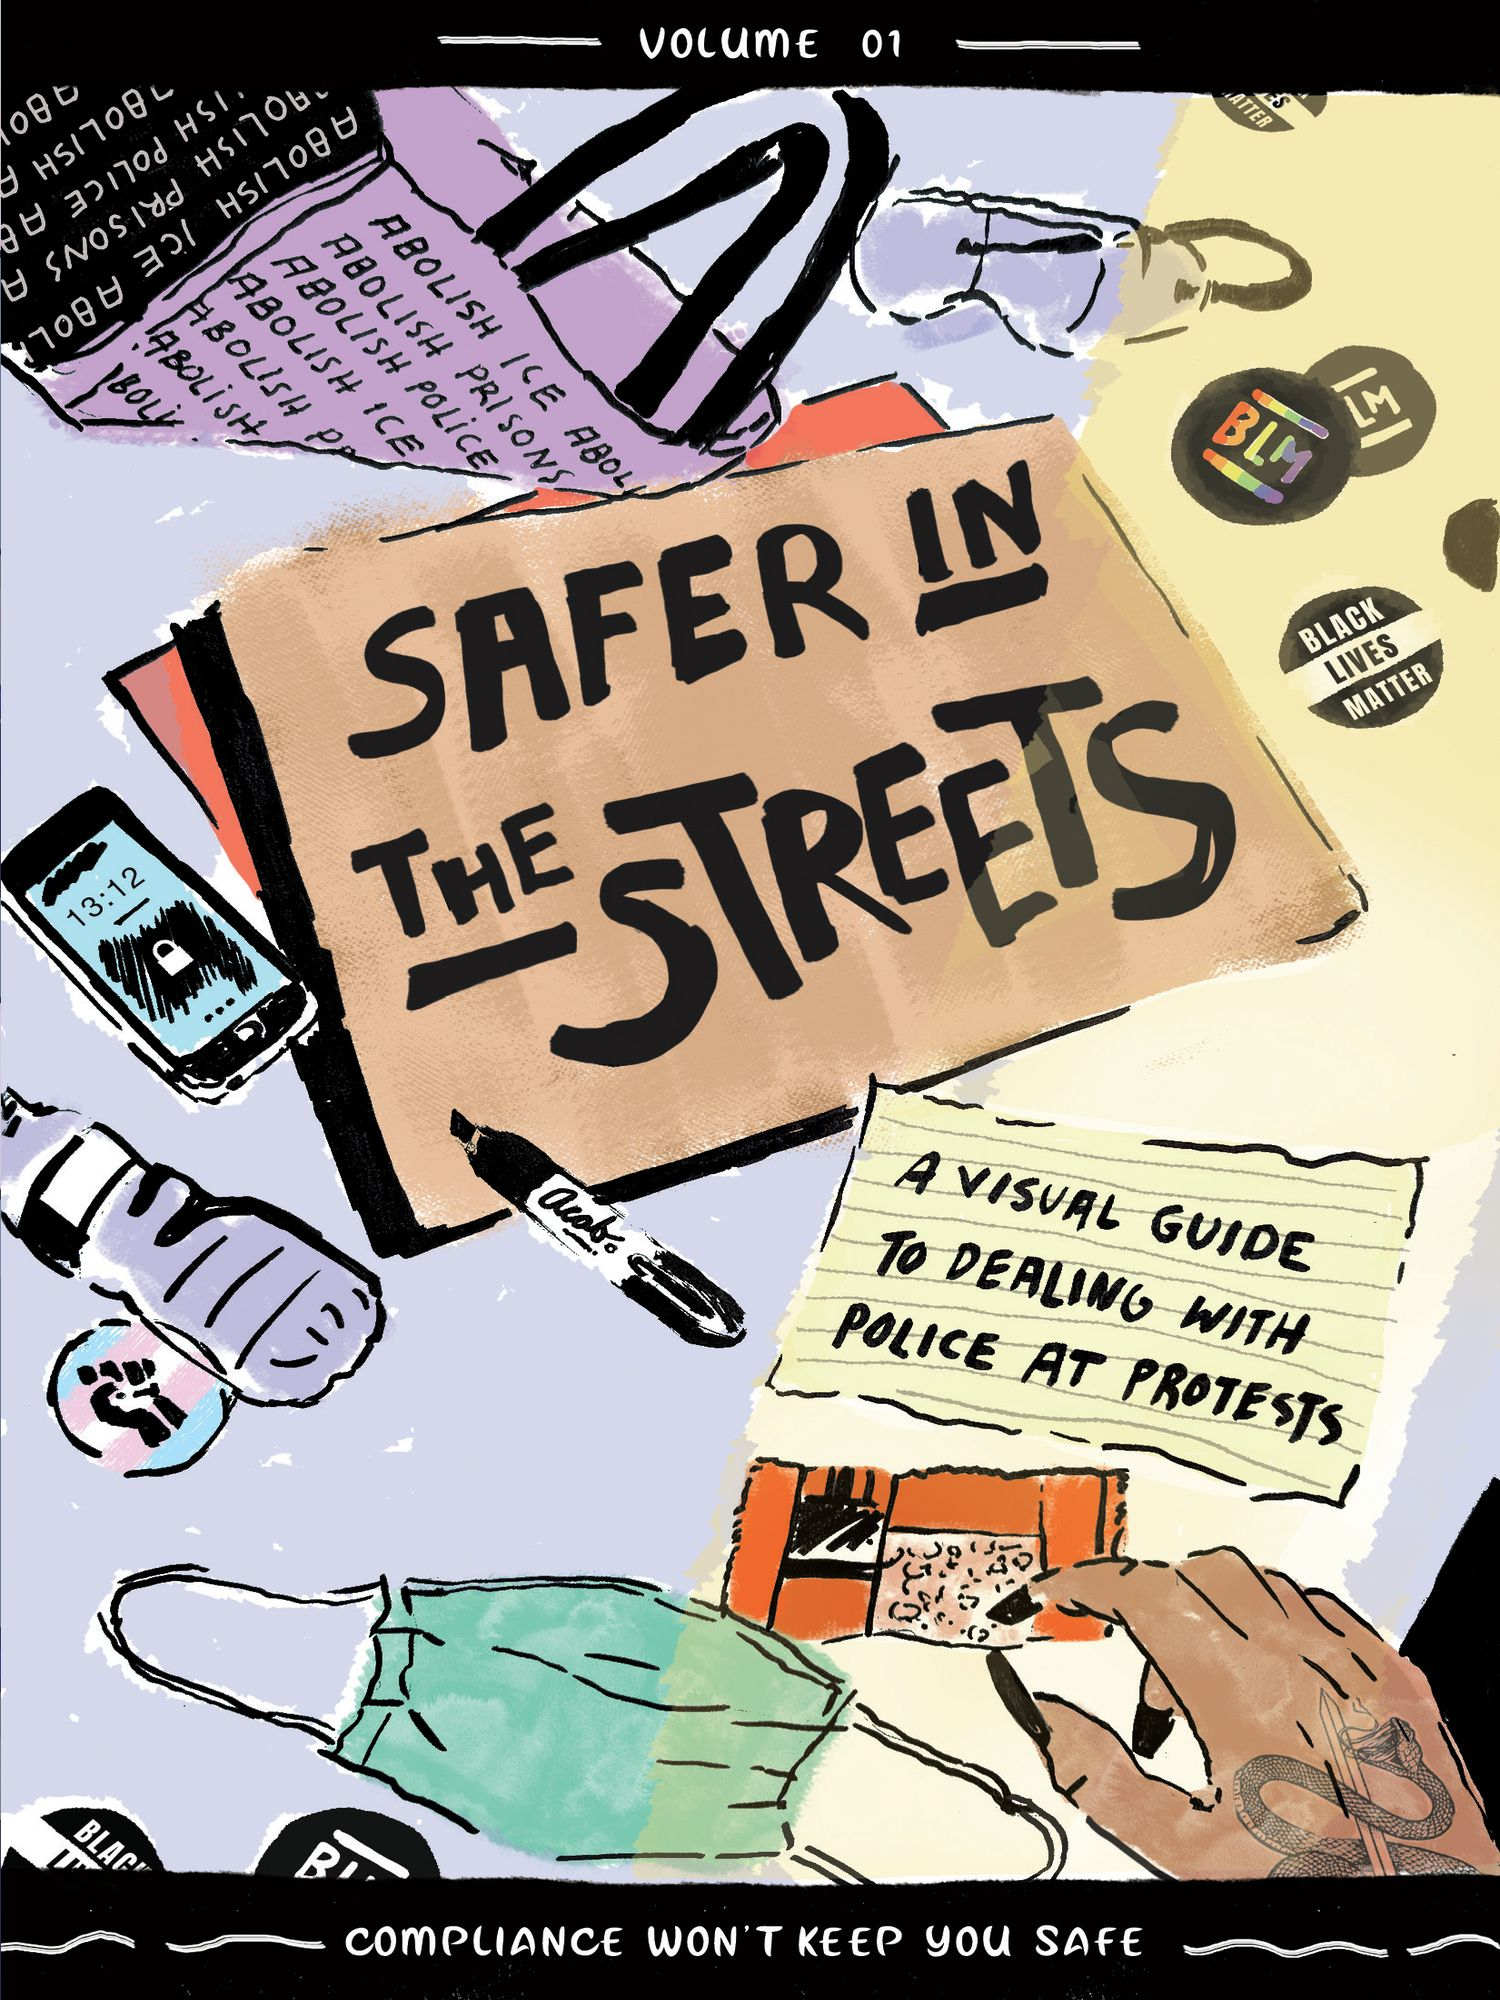 Safer in the Streets (1)